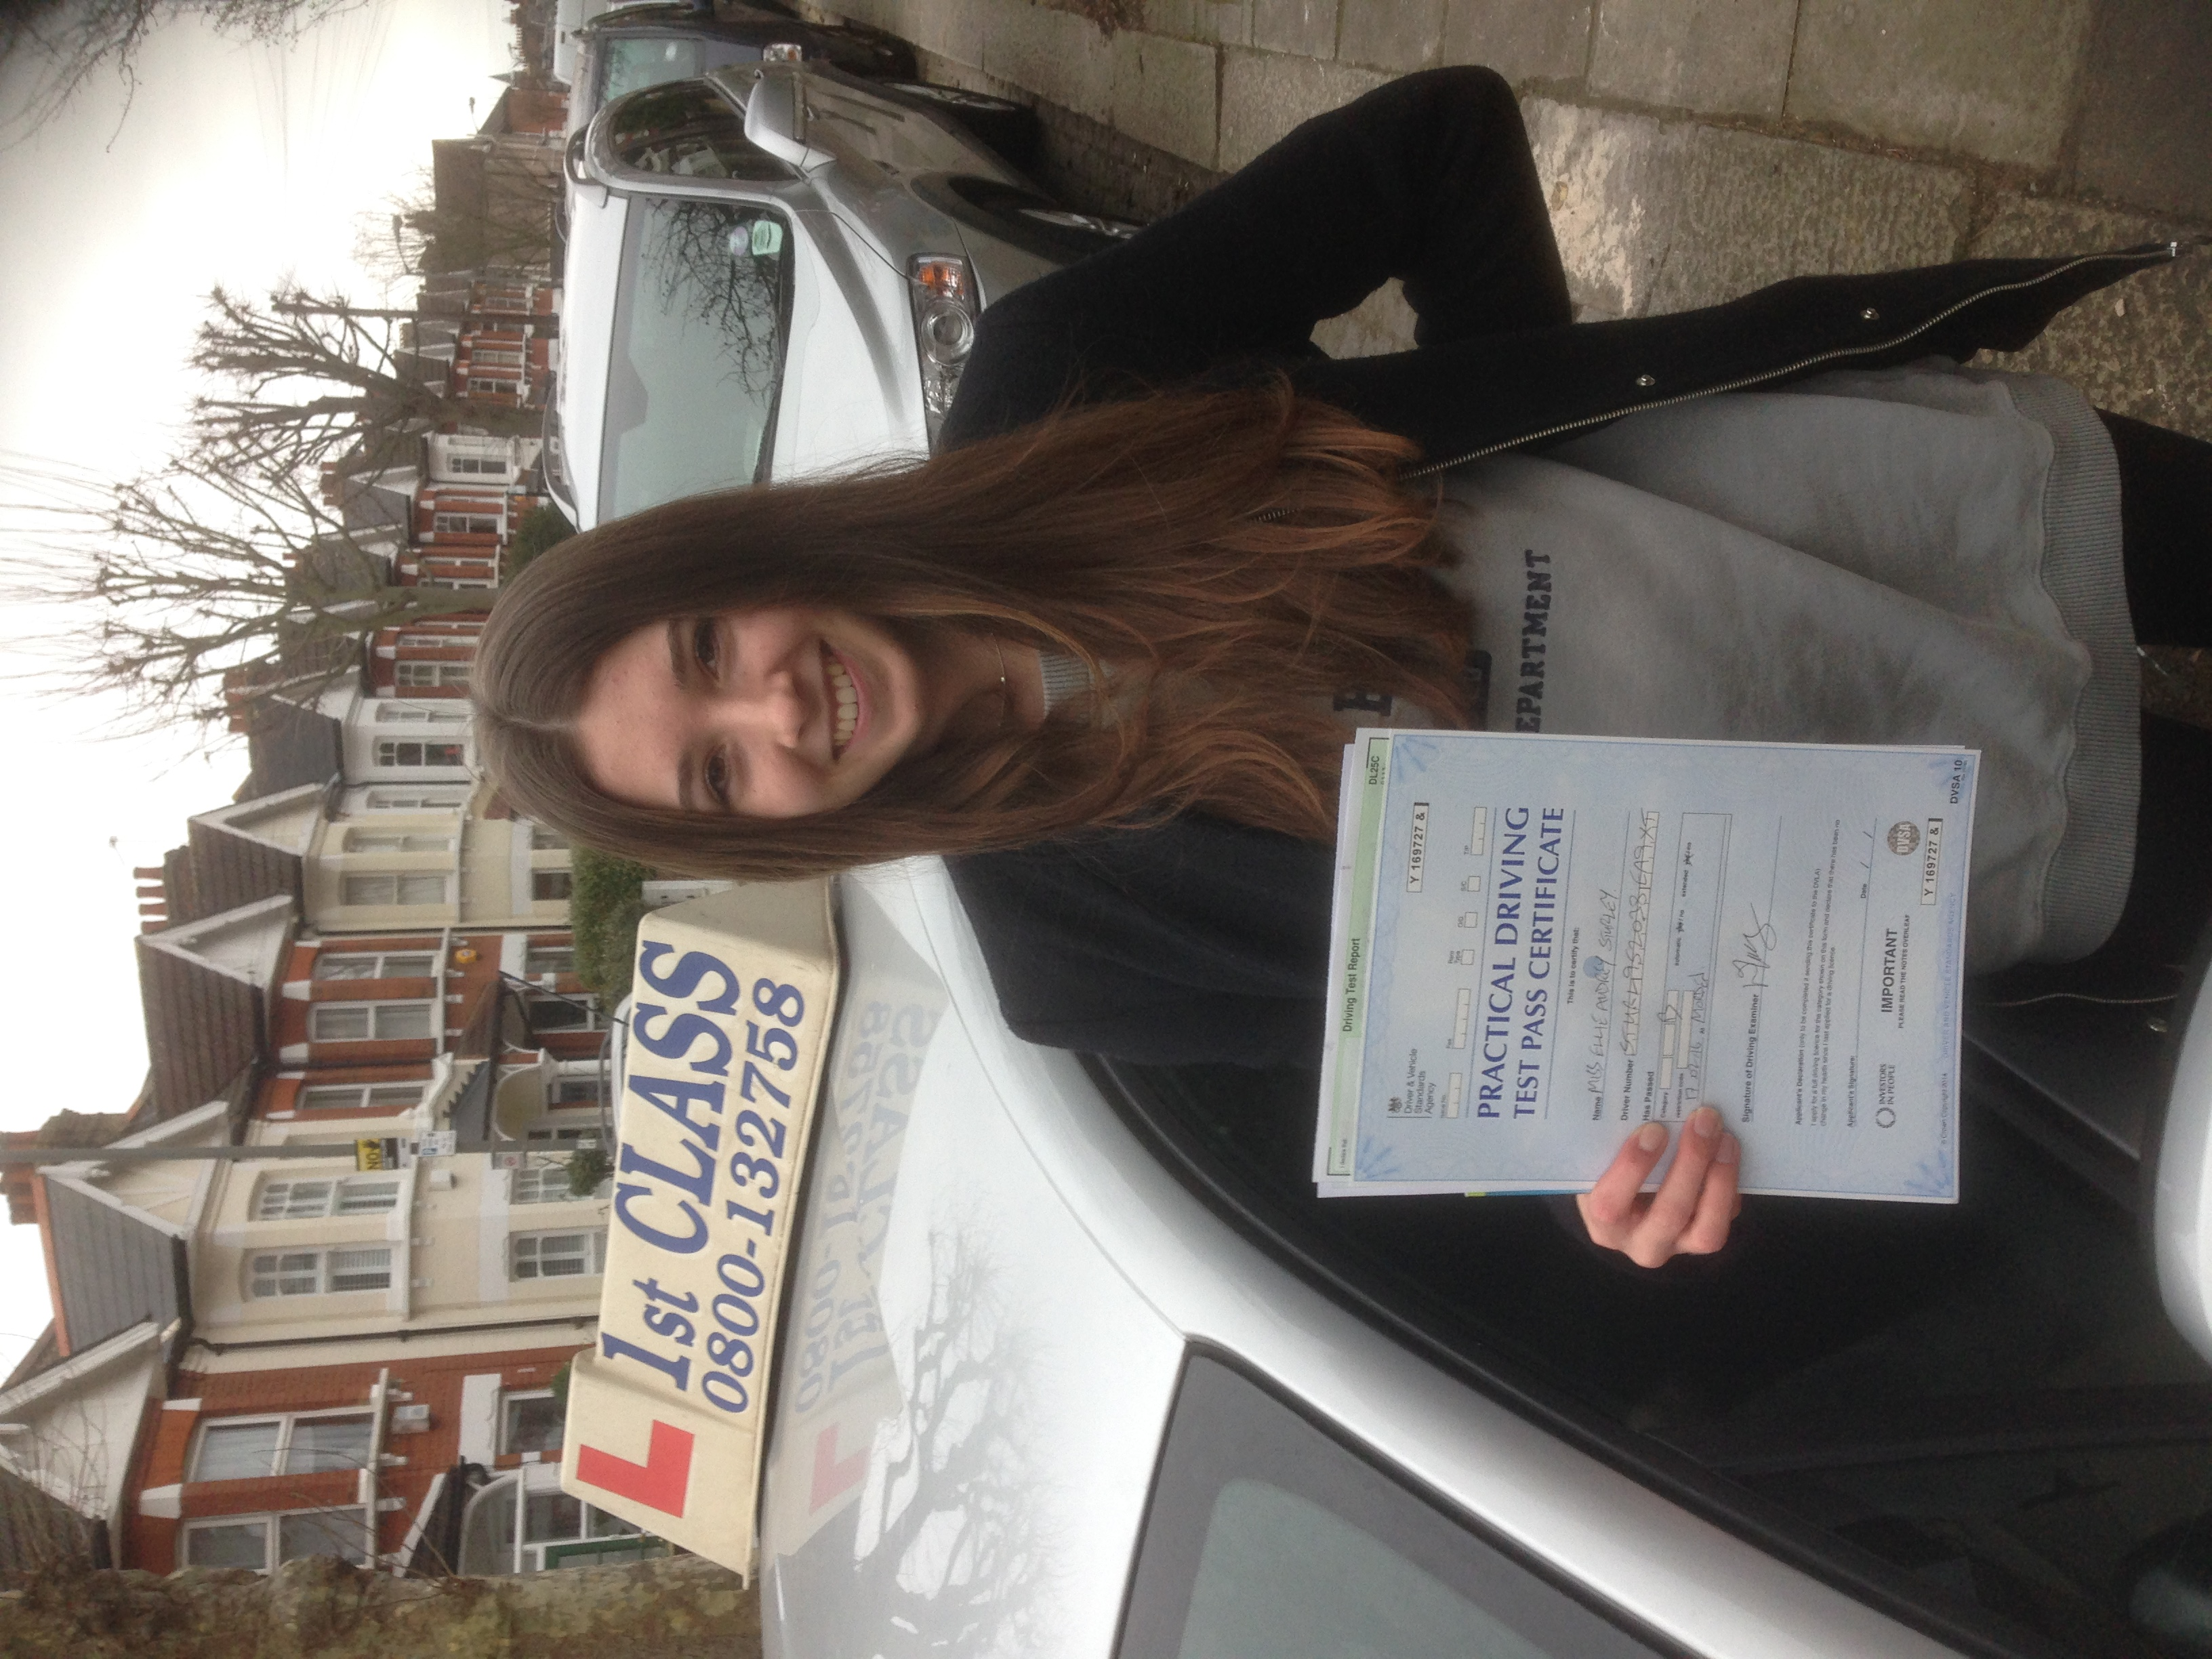 Ellie with Driving test pass certificate